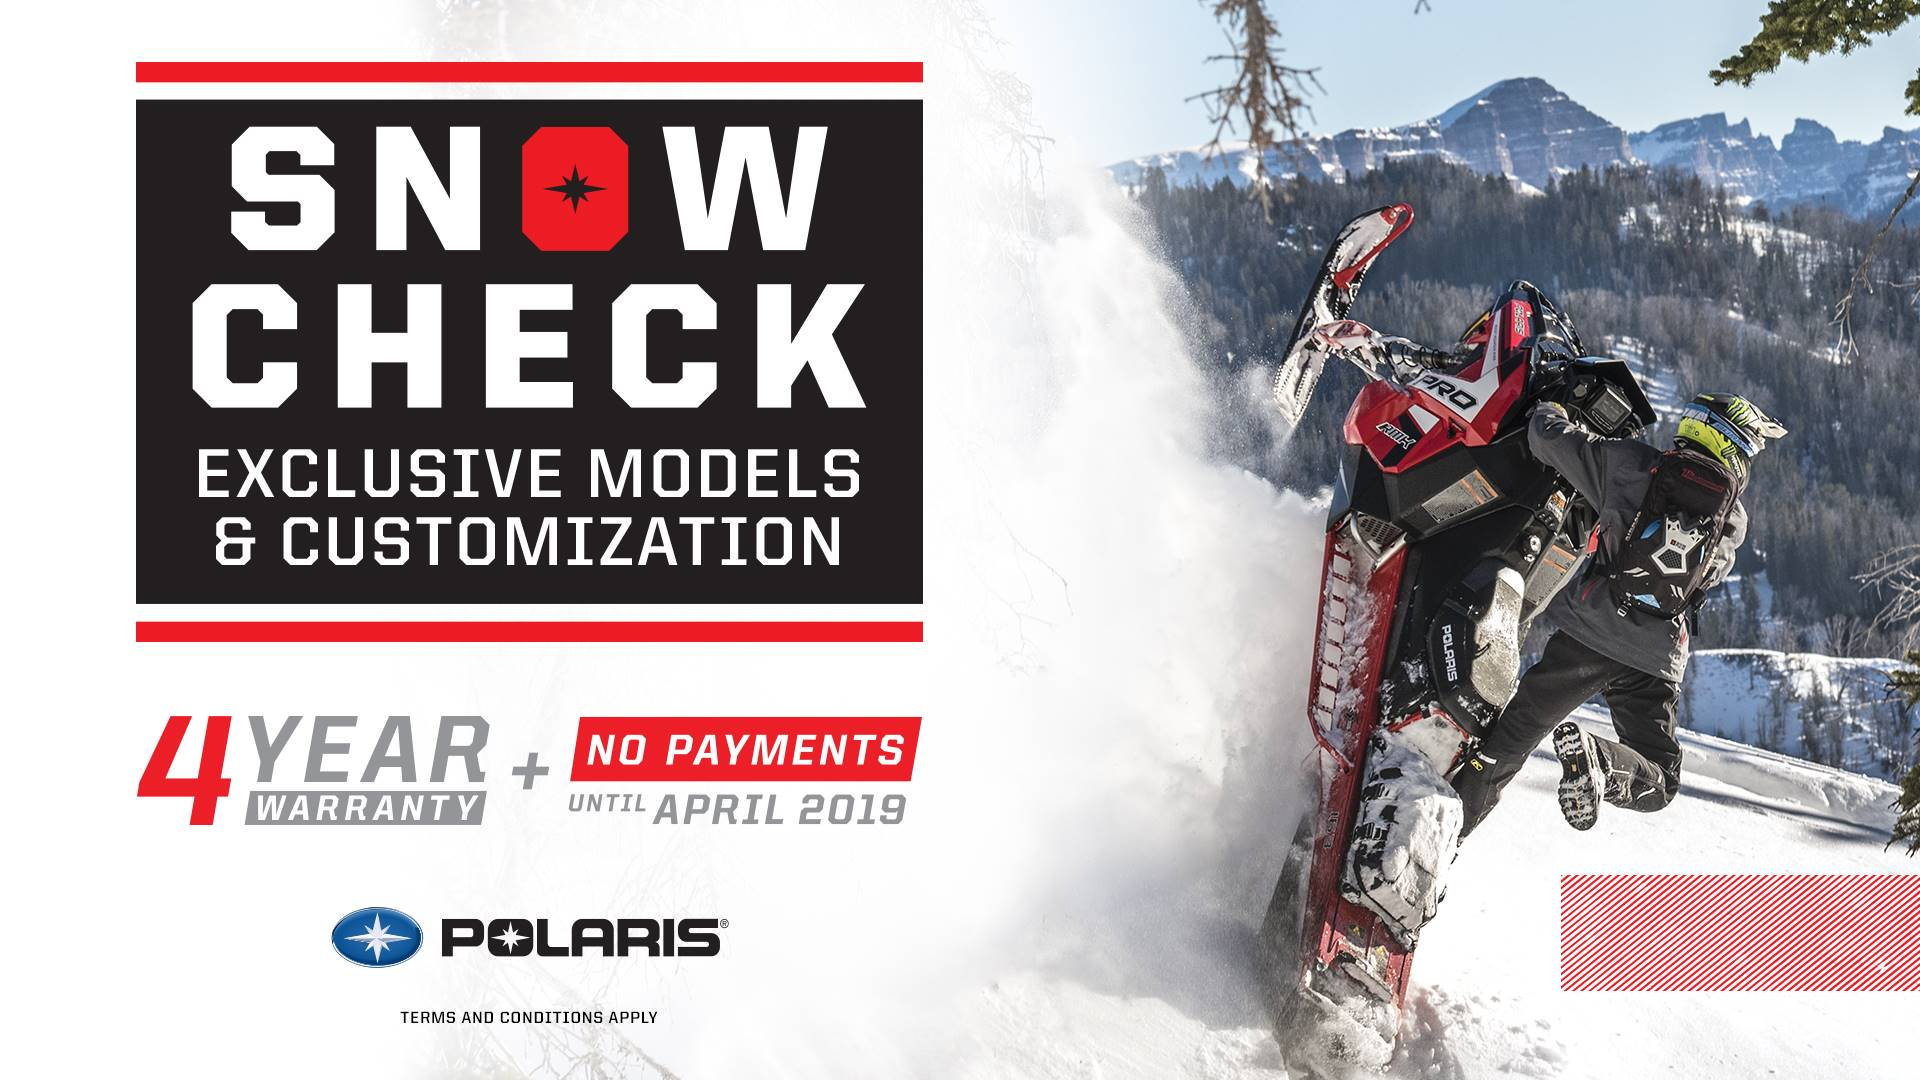 Polaris SnowCheck Models - 4 Year Warranty + No Payments until April 2019